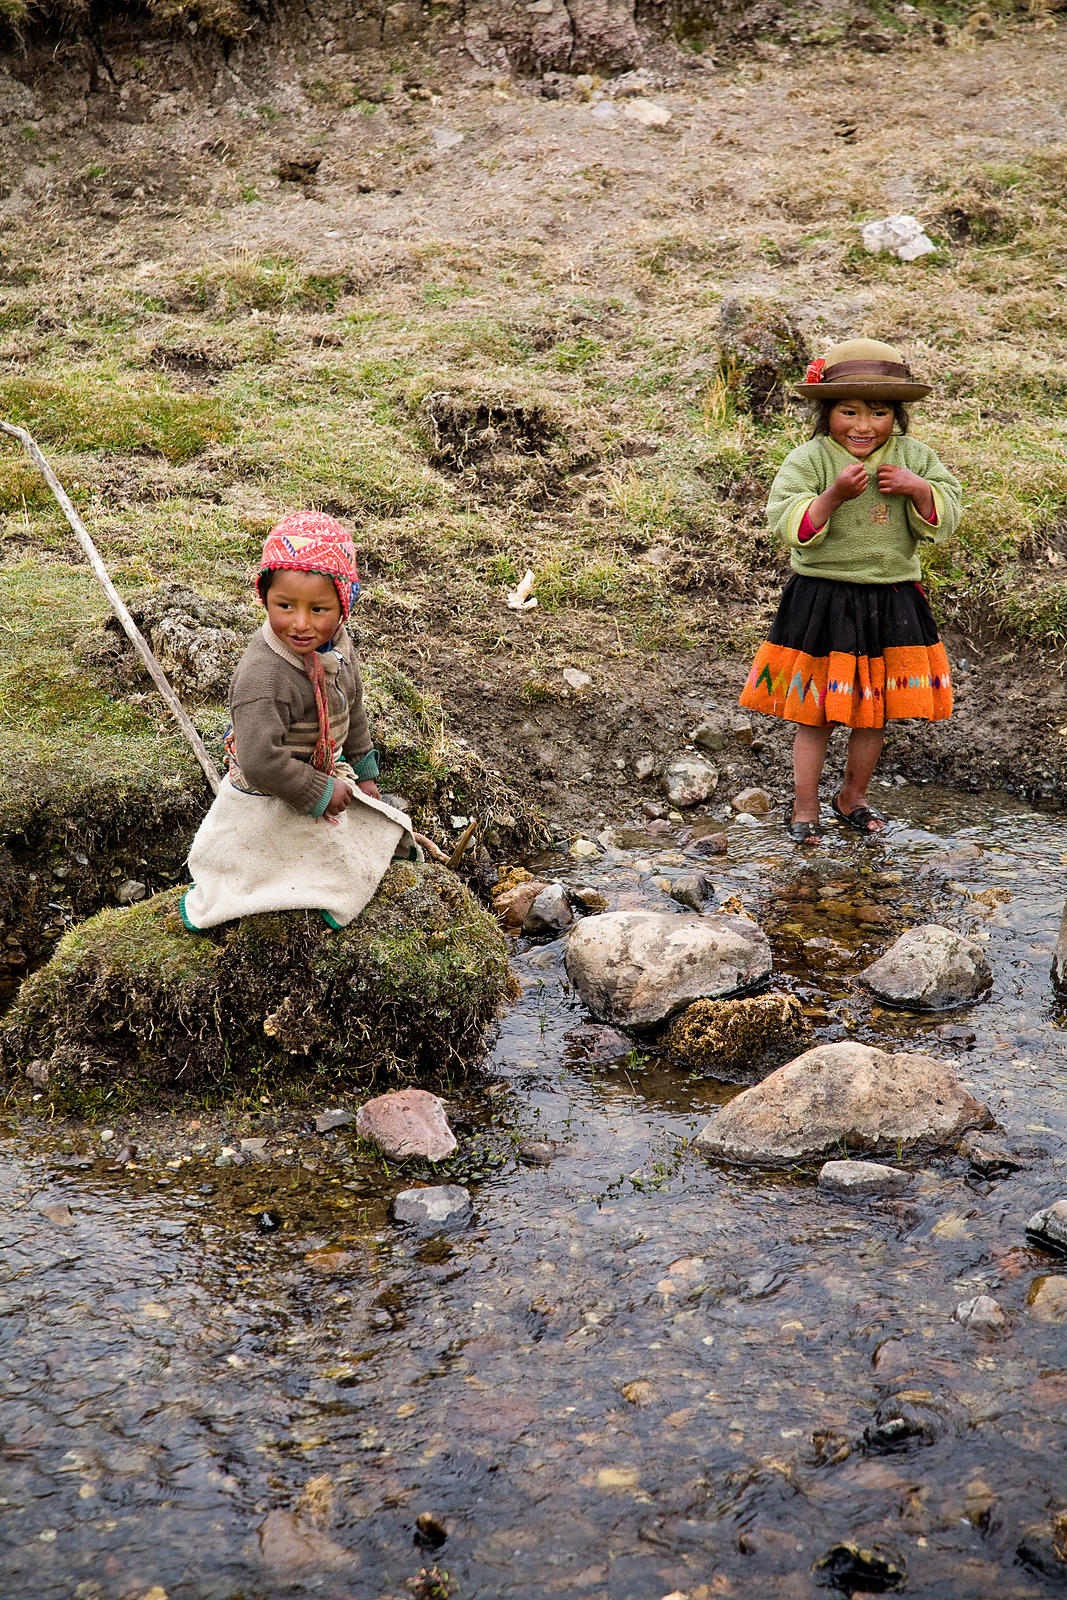 Andean kids splahing in the chilly water, Lares Trek, Andes Mountains, Peru